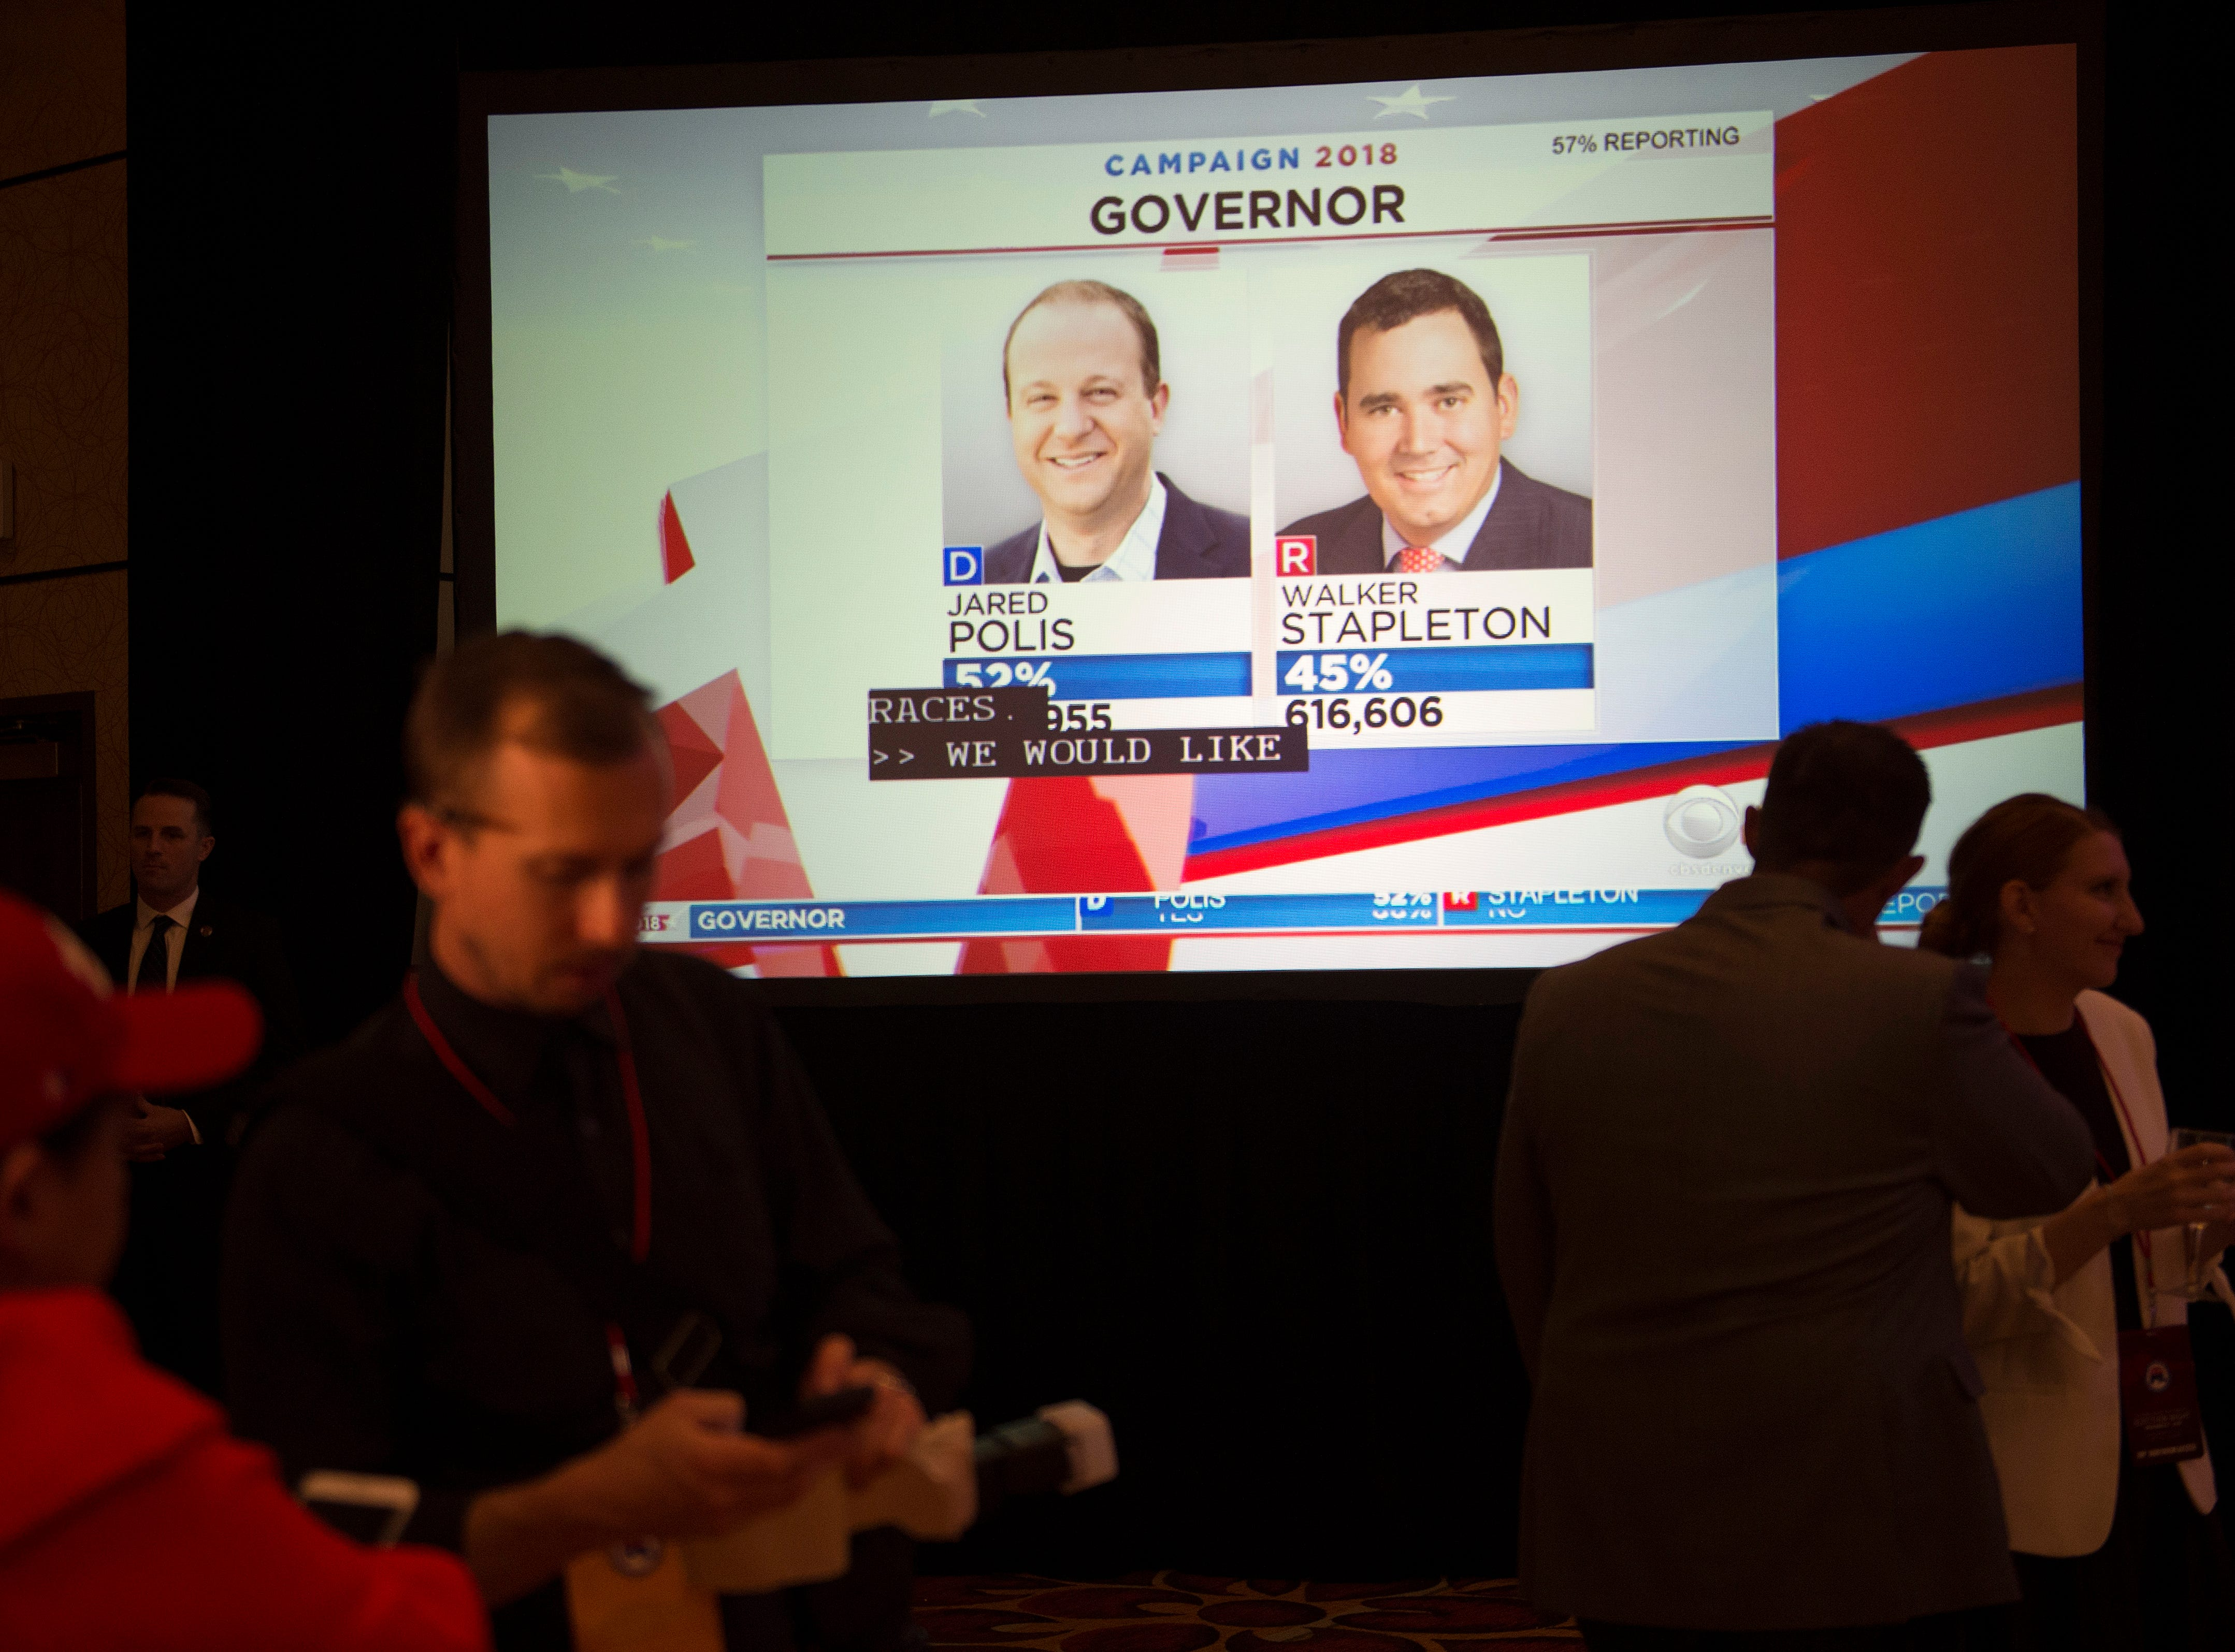 Early voting results for the race for Colorado governor come in during a Colorado GOP watch party at the Denver Marriott South at Park Meadows in Lone Tree on Election Day, Tuesday, November 6, 2018.